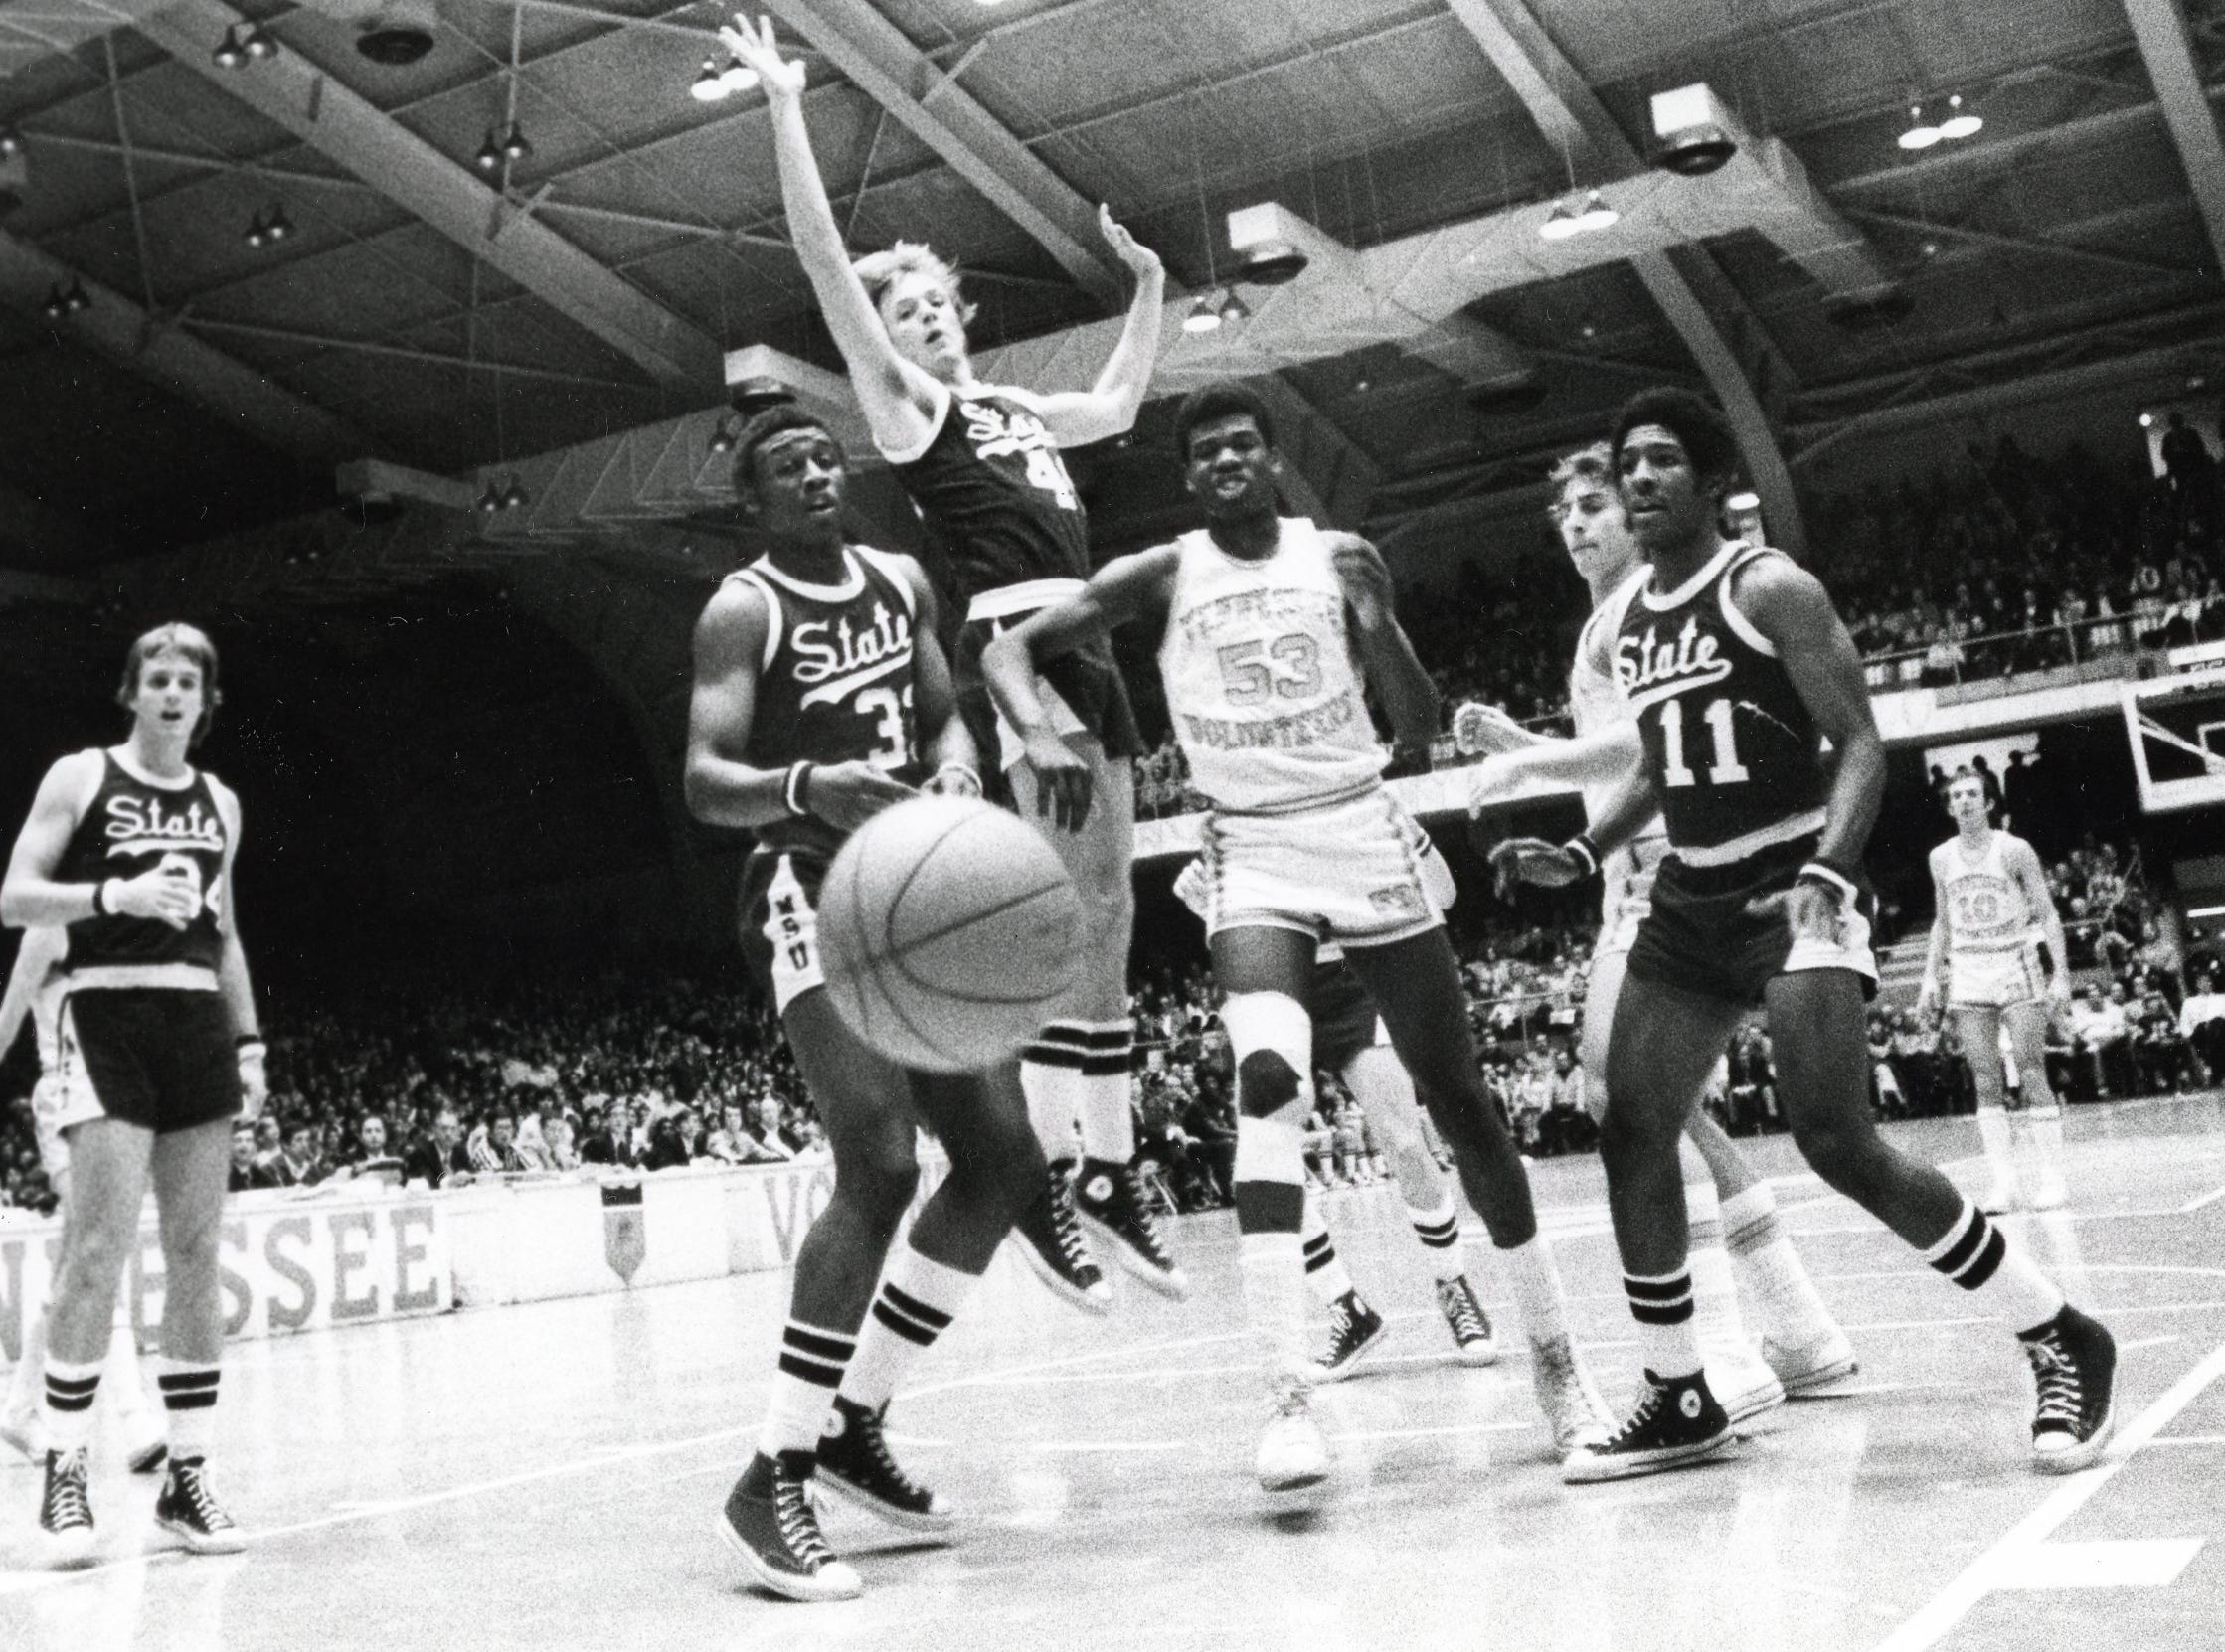 Bernard King, center, during a UT basketball game in the mid-1970s.